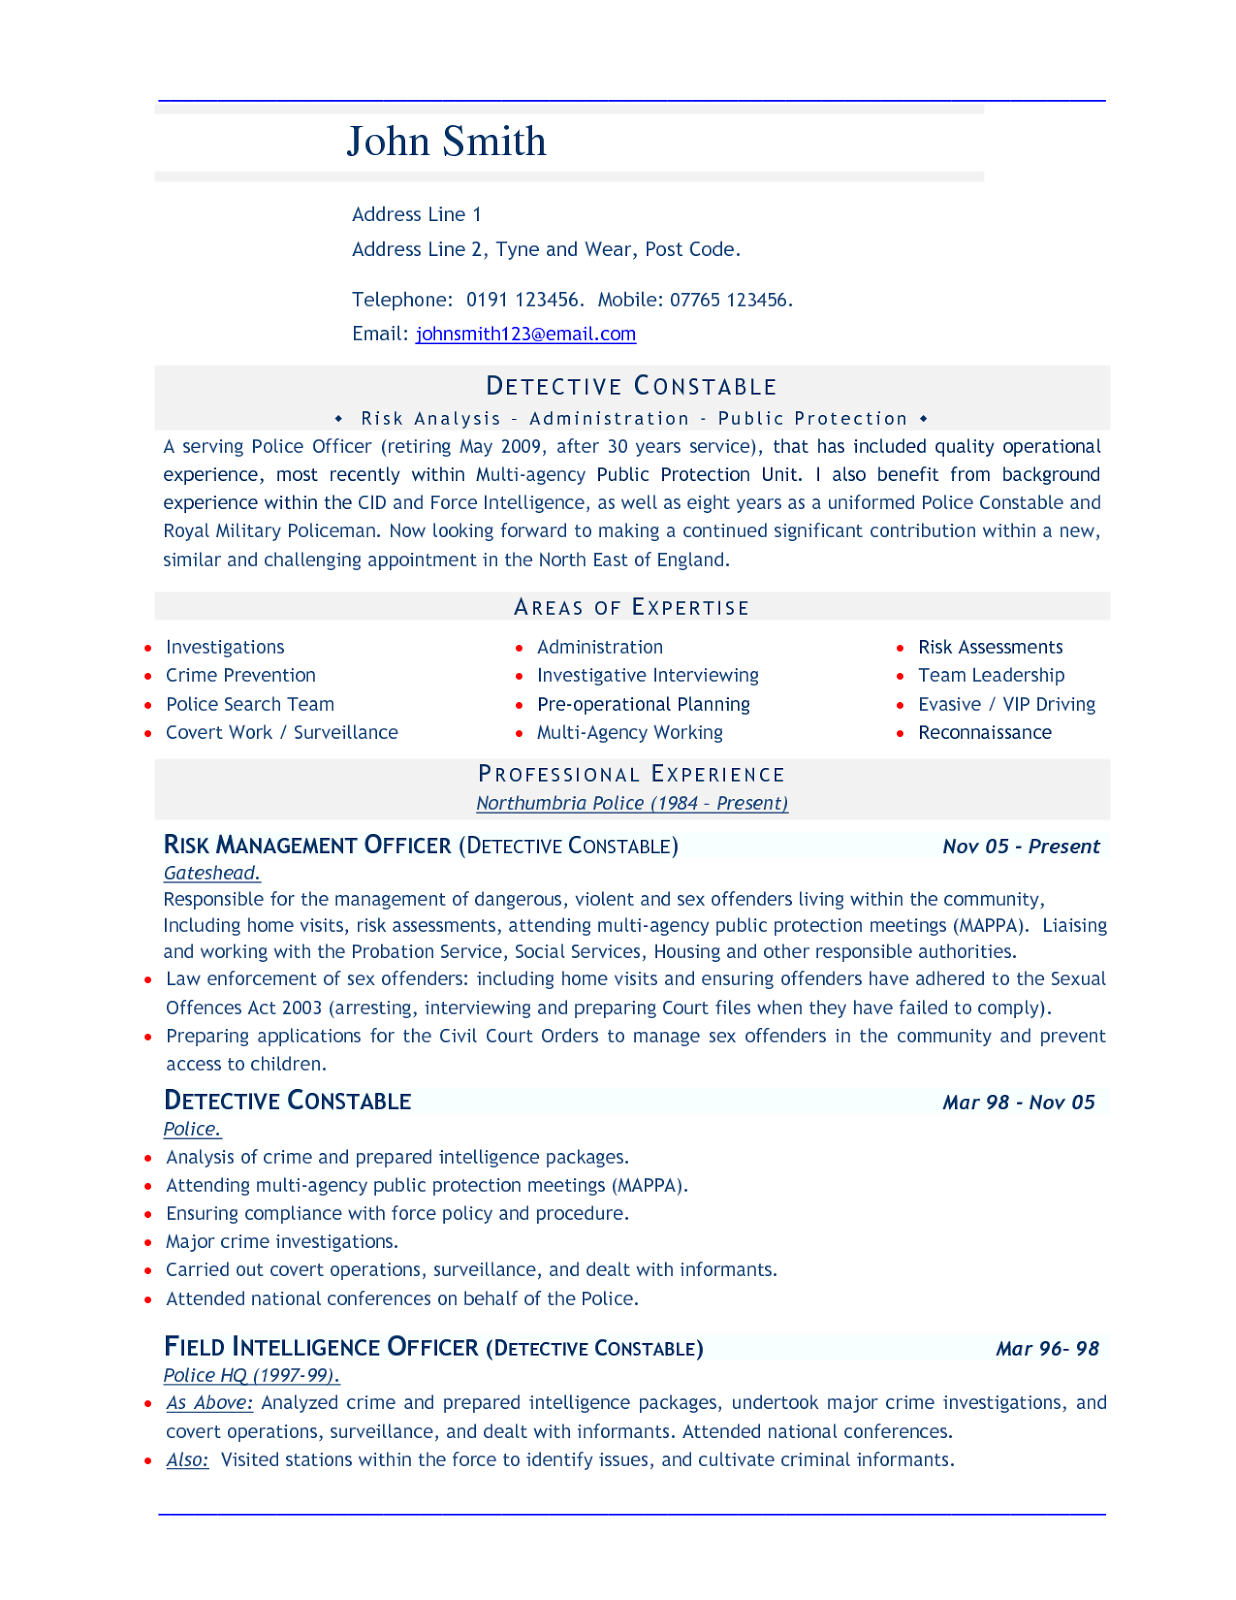 resume templates doc blue side resume template professional and creative resume templates for microsoft word - Resume Templates Free Download Doc